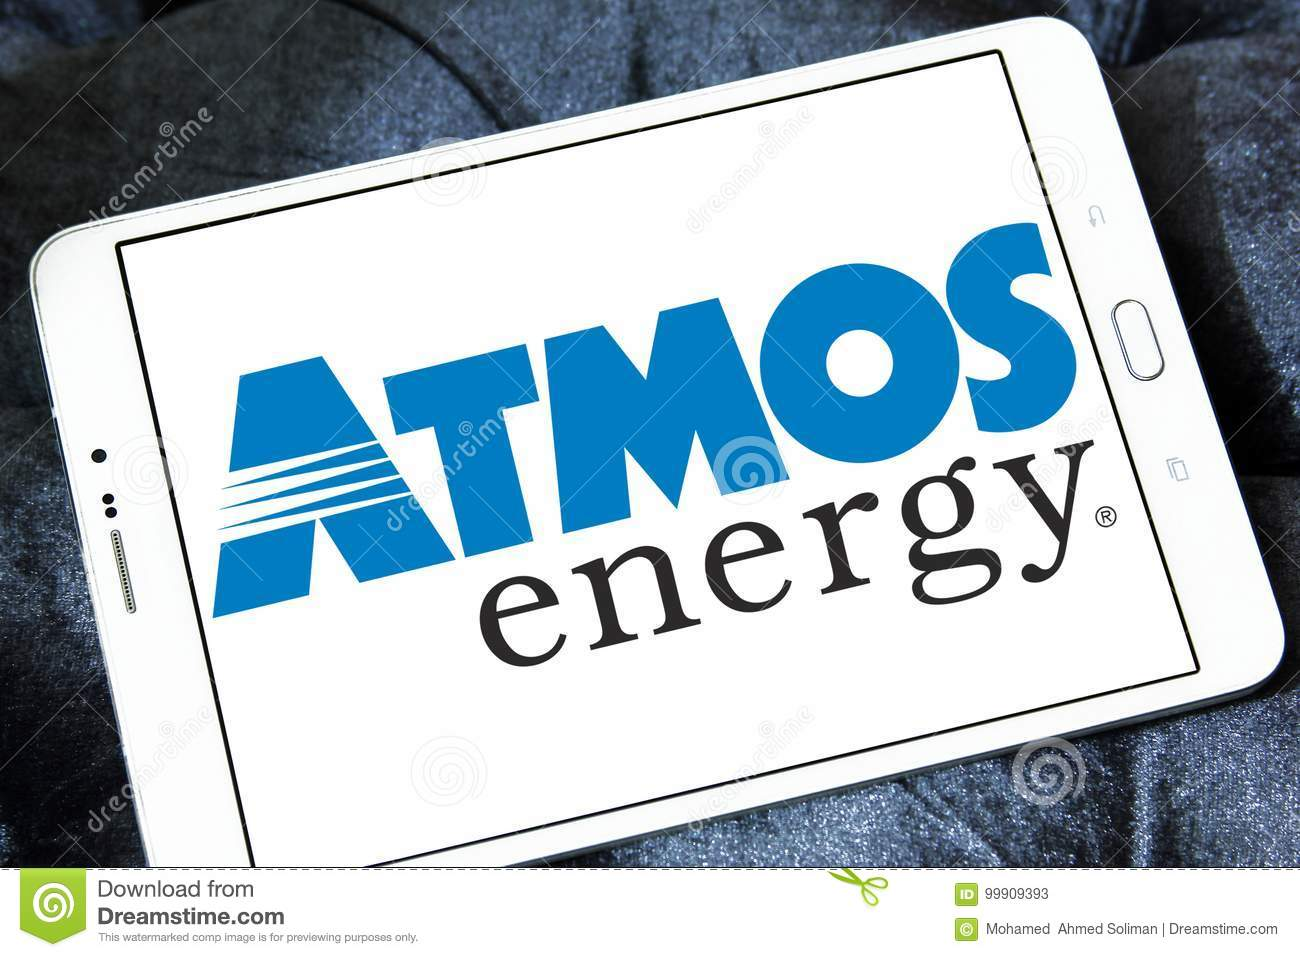 Atmos energy sign in